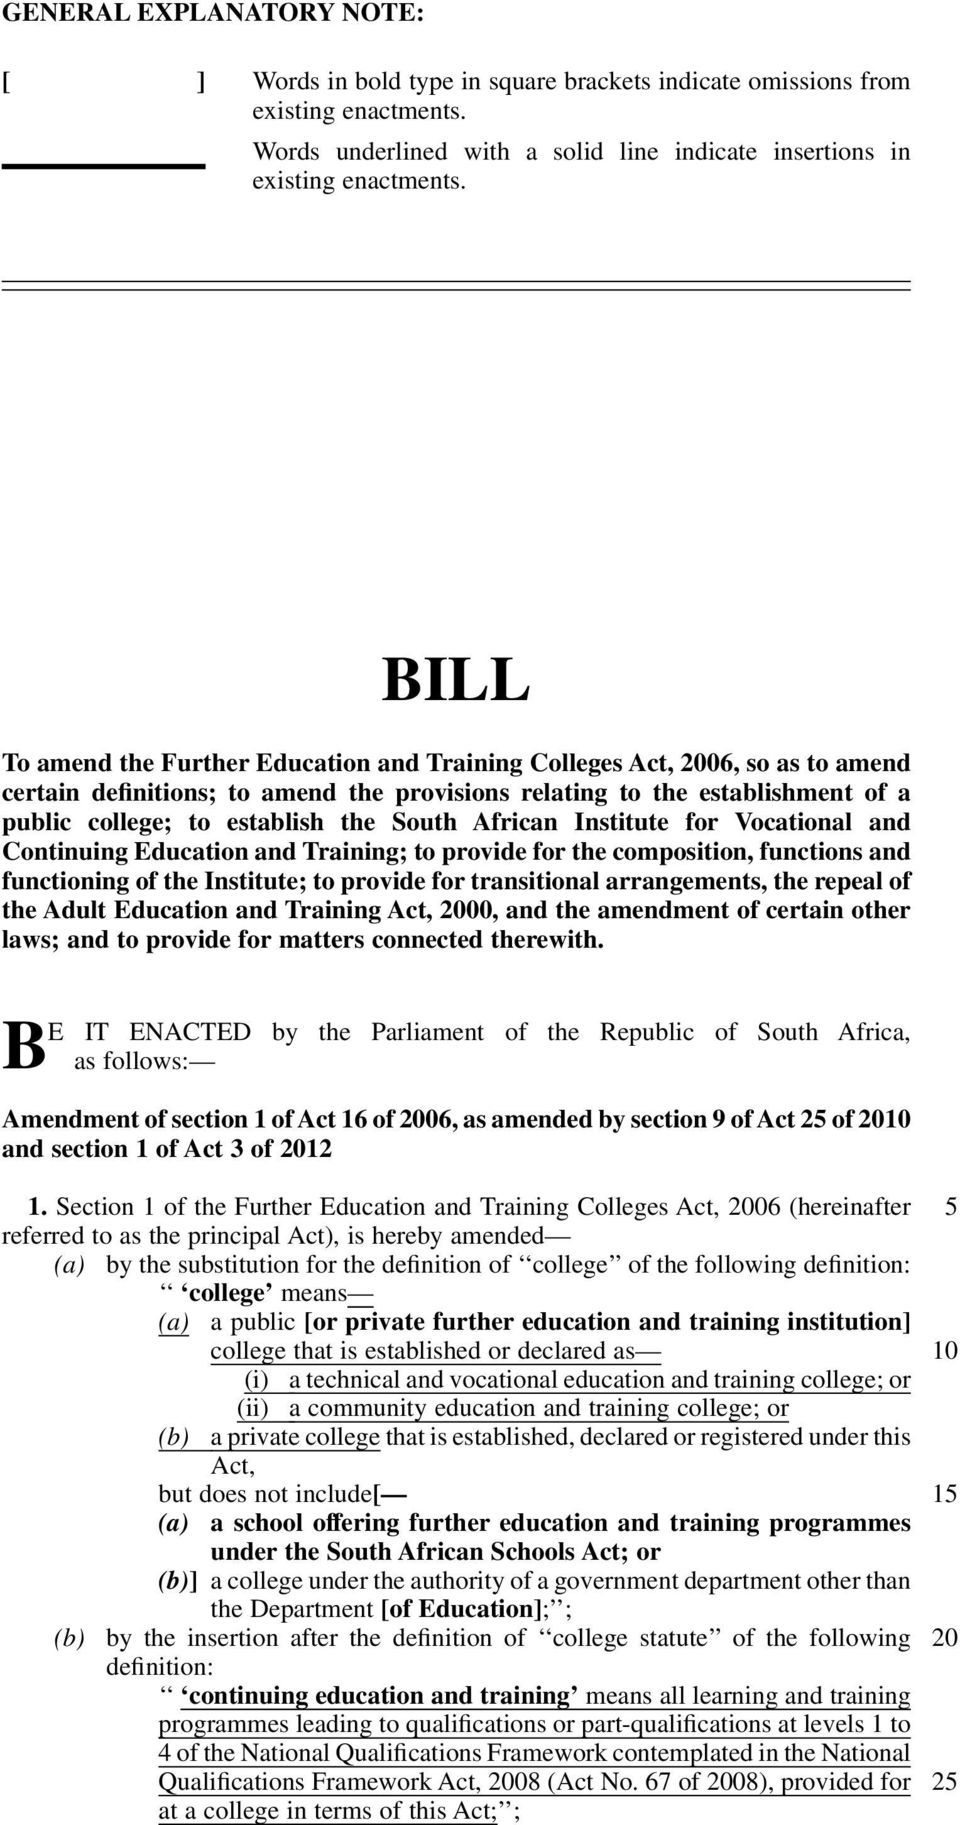 South African Institute for Vocational and Continuing Education and Training; to provide for the composition, functions and functioning of the Institute; to provide for transitional arrangements, the